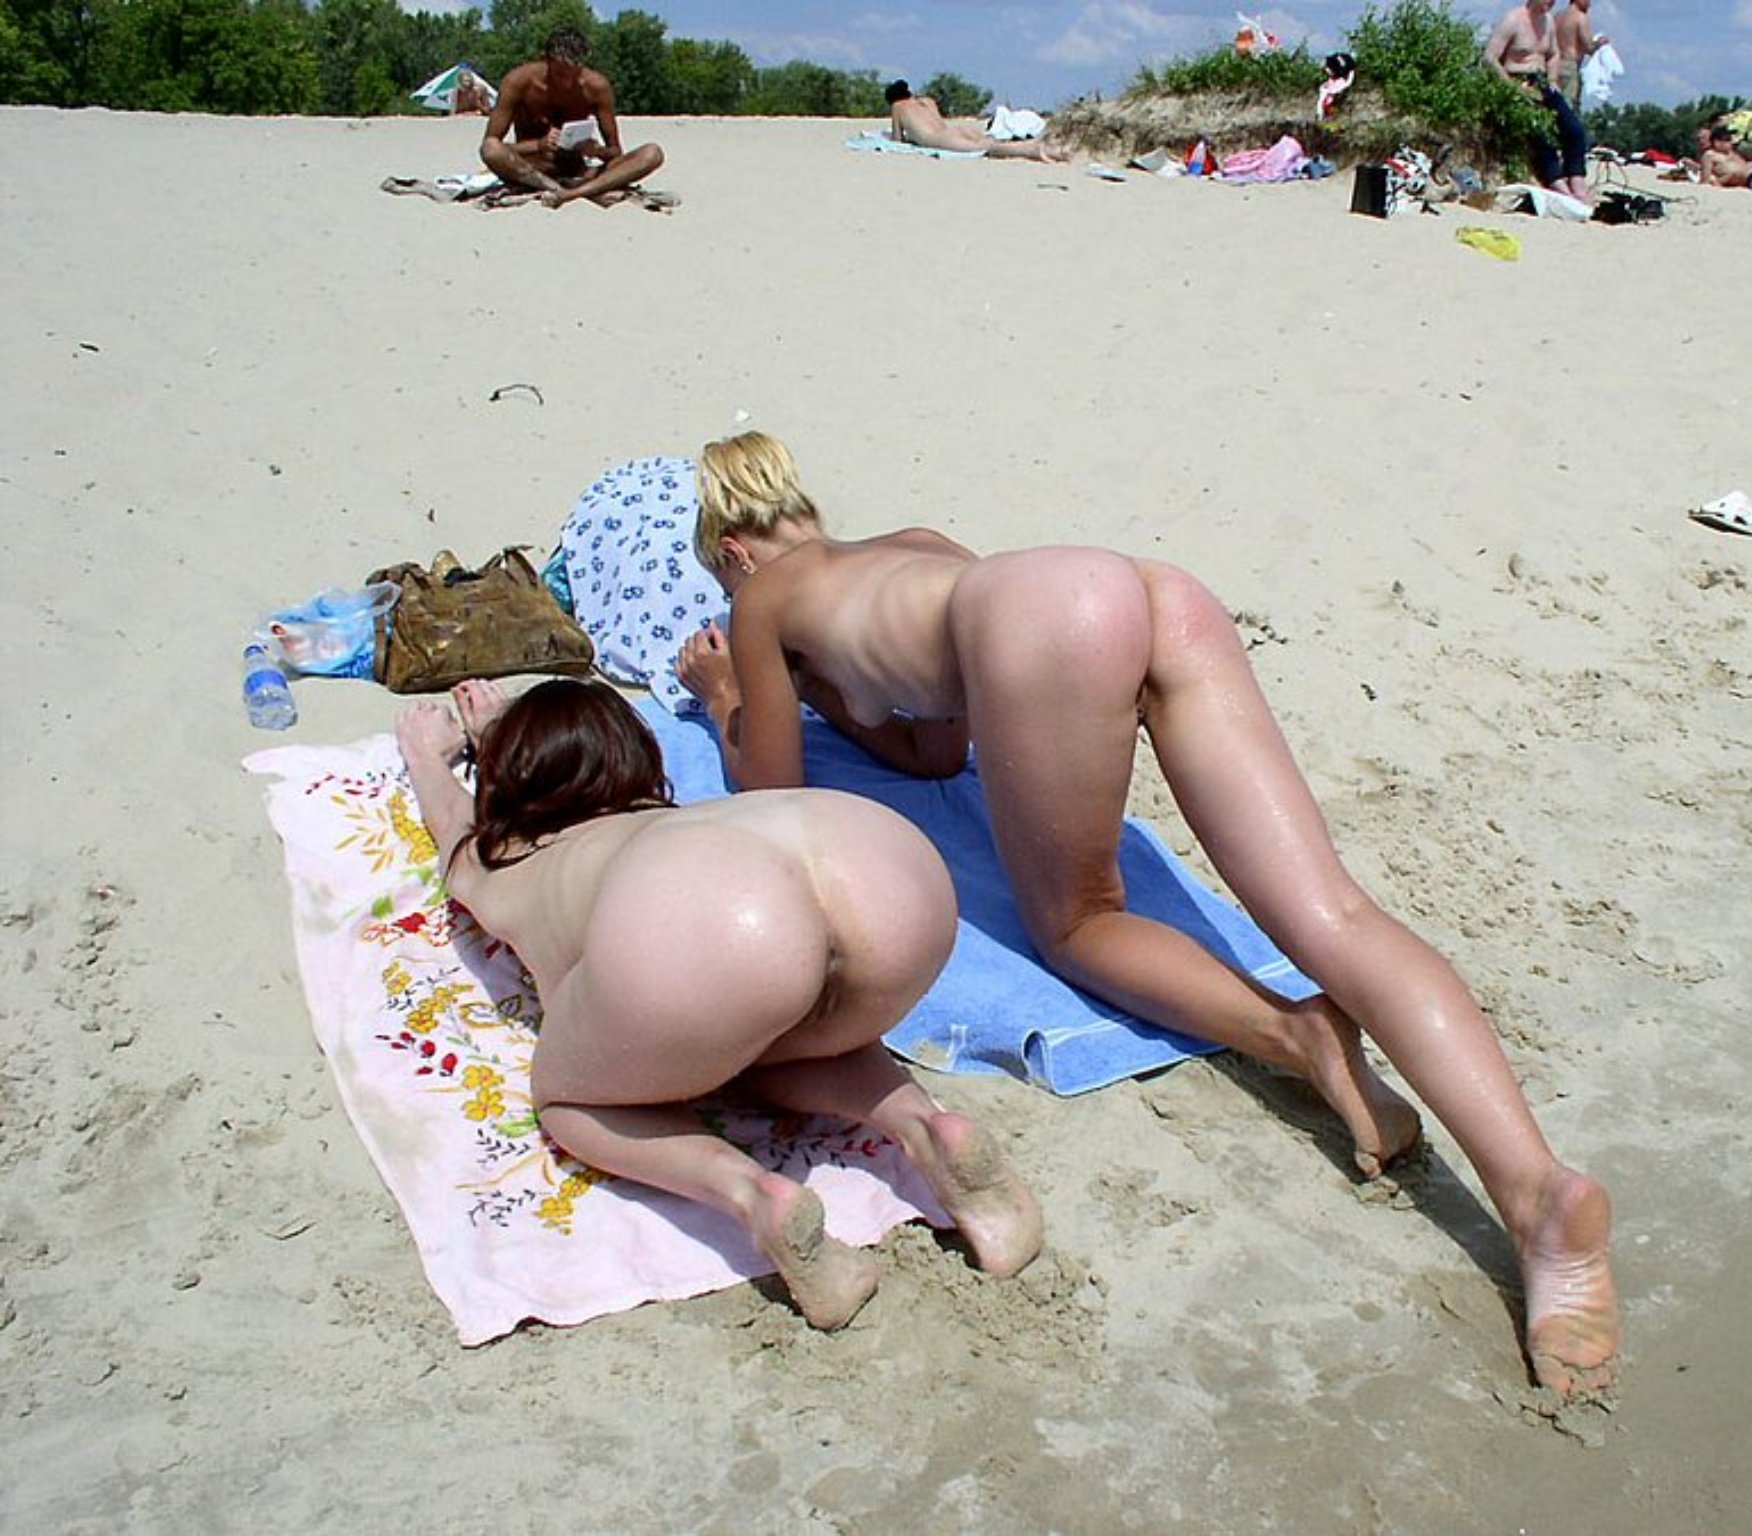 Two Girls Doggy Style On A Beach Towel - Nubile Babes-6388